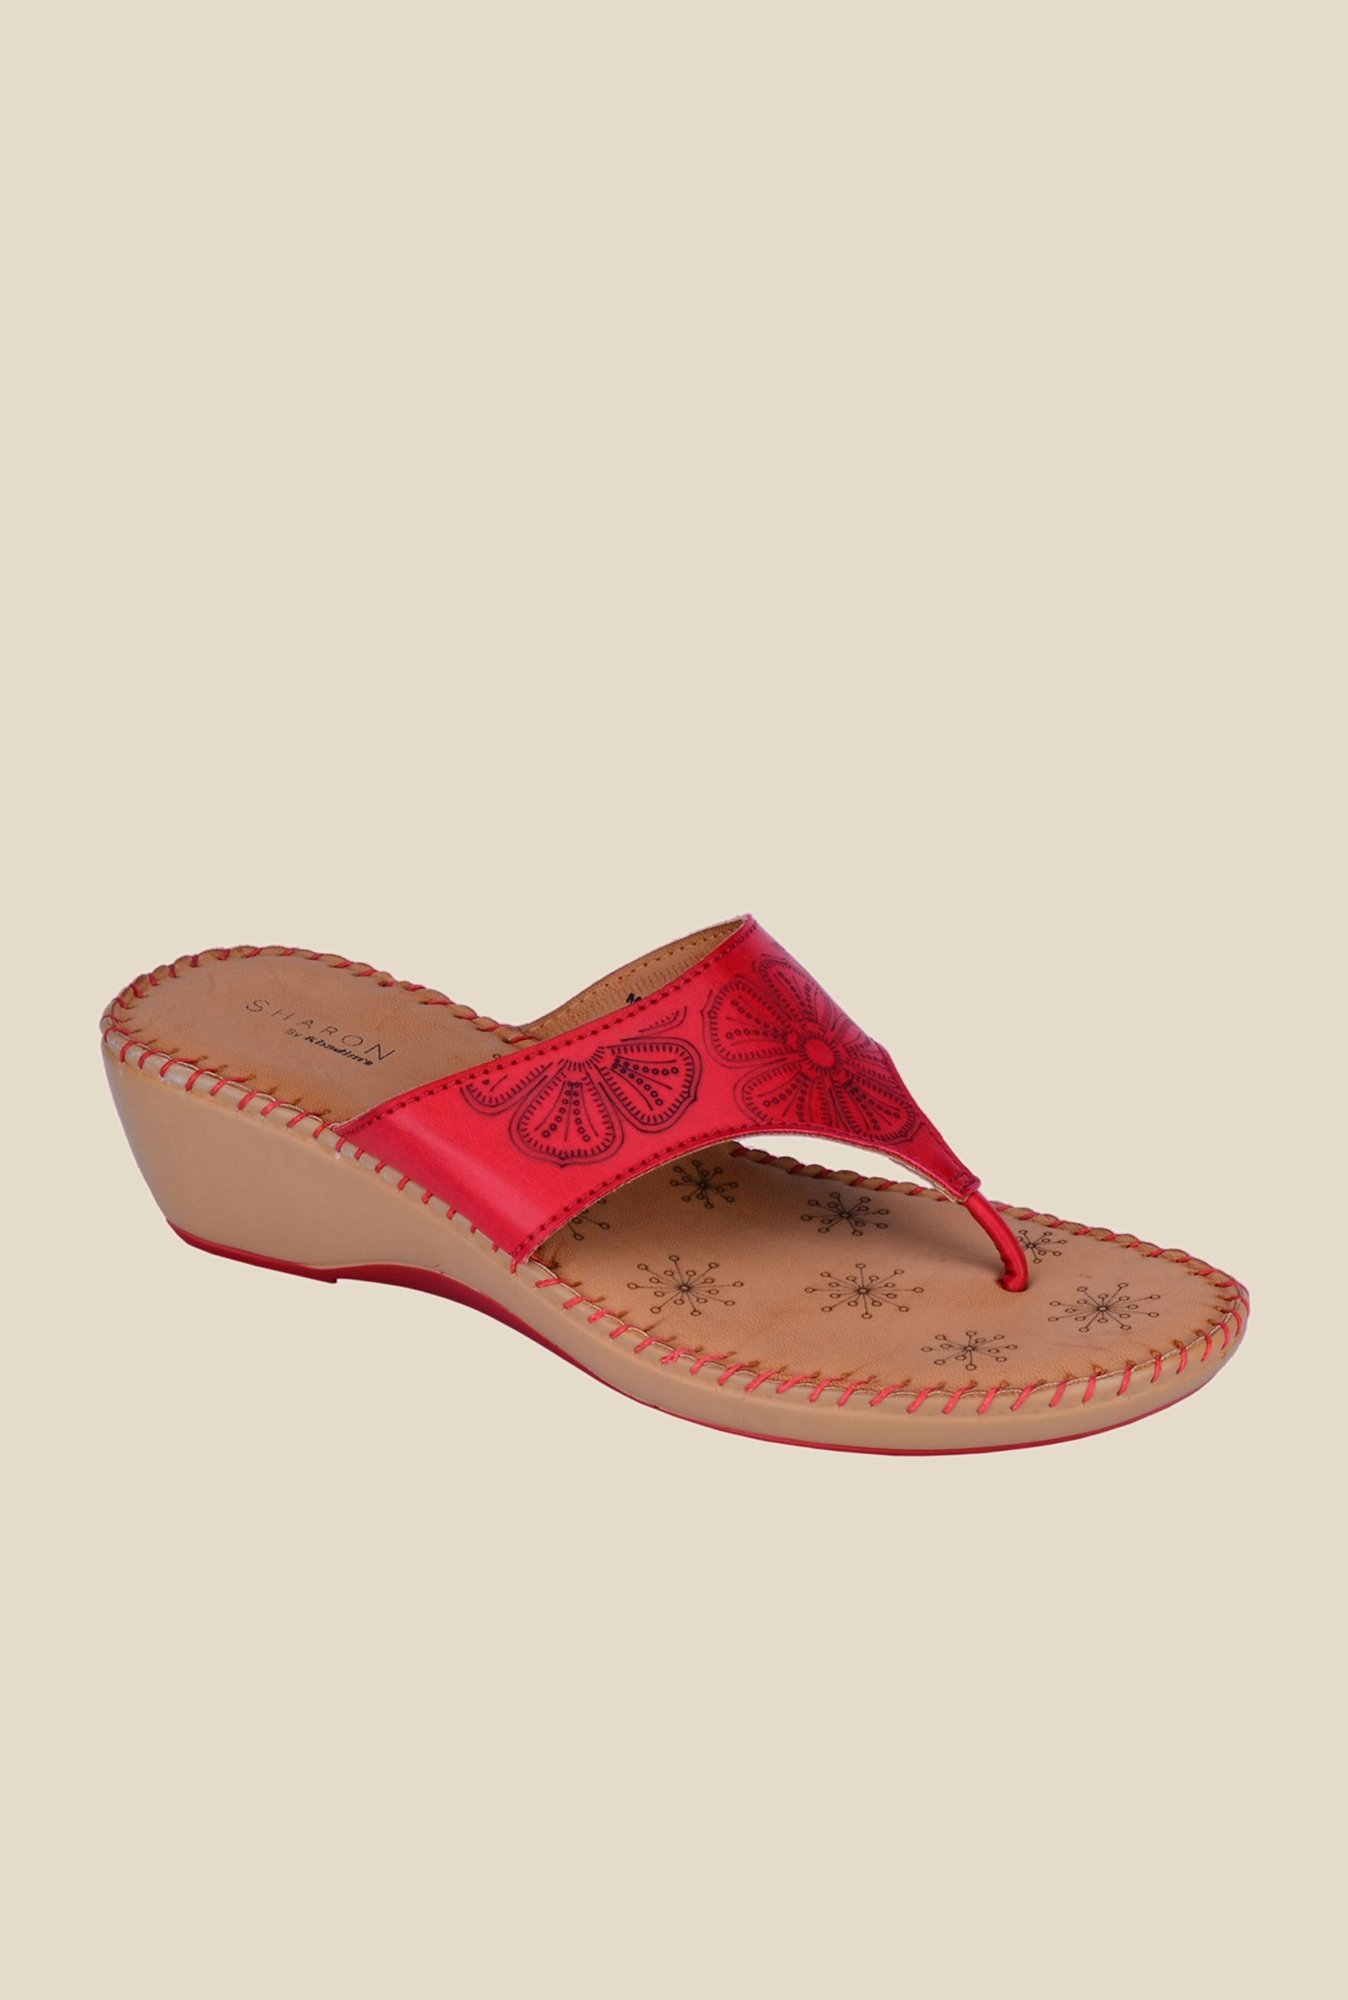 Khadim's Sharon Red Wedge Heeled Sandals